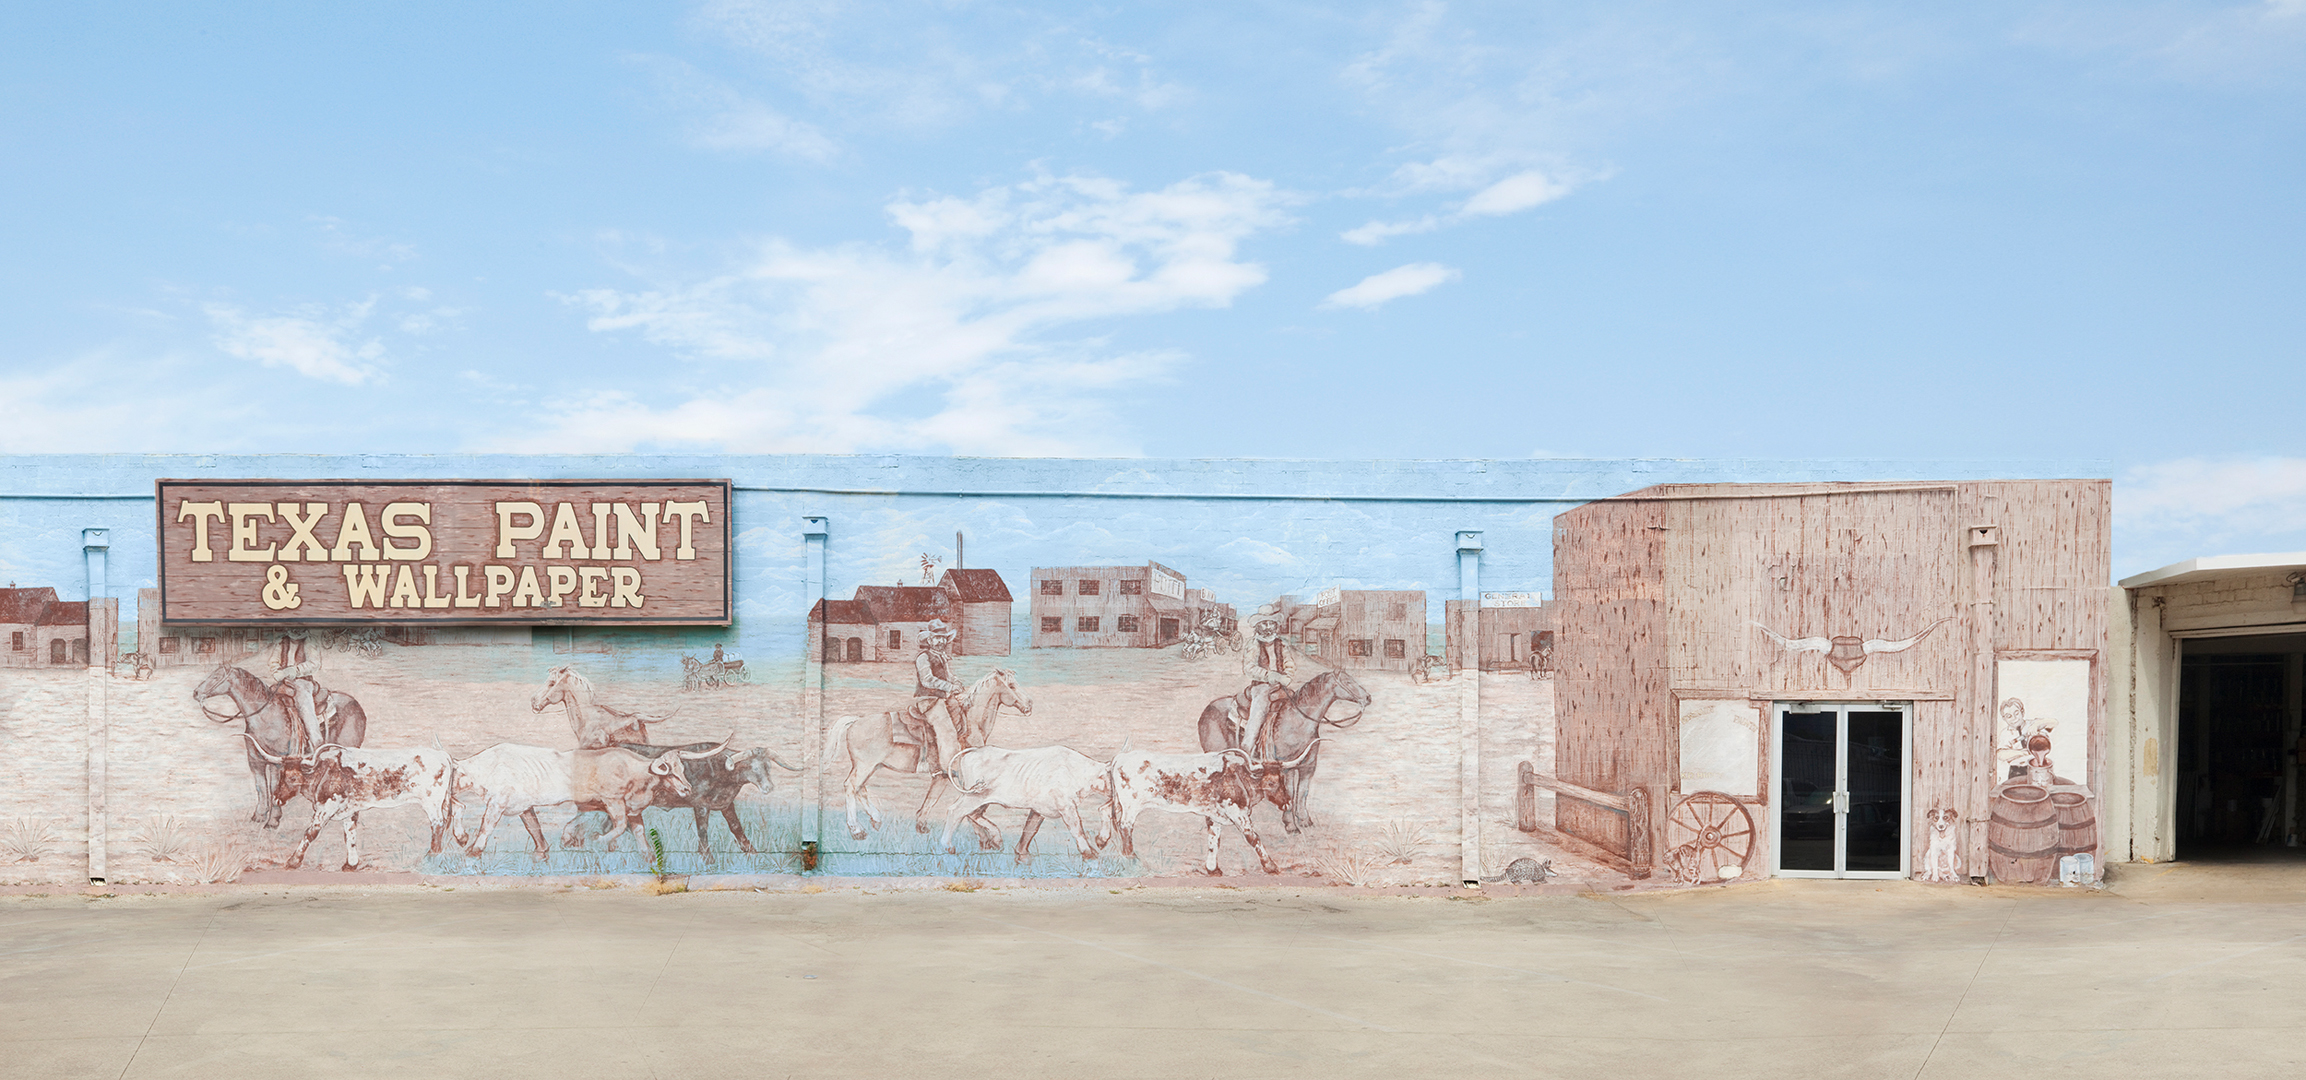 Texas Paint and Wallpaper,  23 x 40 inches, archival pigment print, 2011